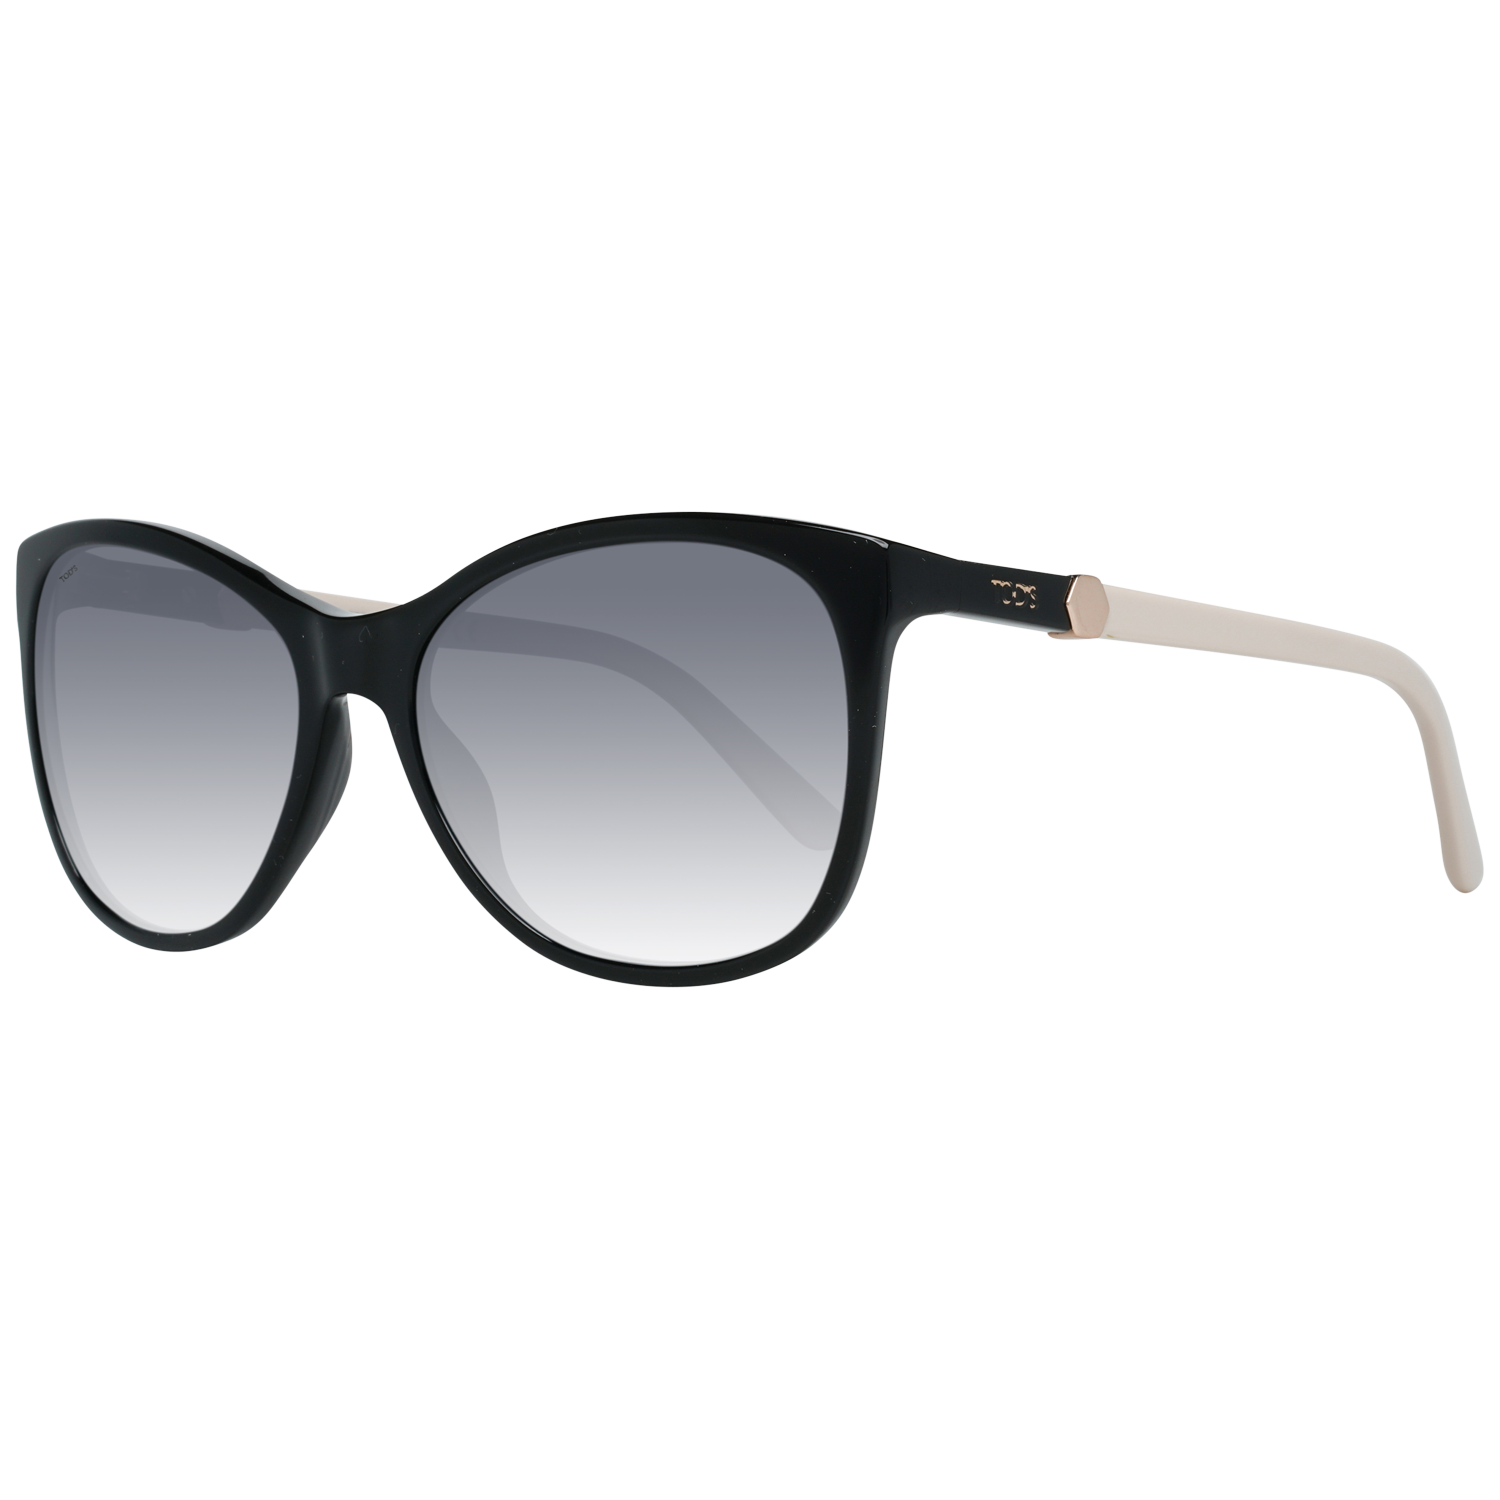 Tods Sunglasses TO0175 01B 57 Black